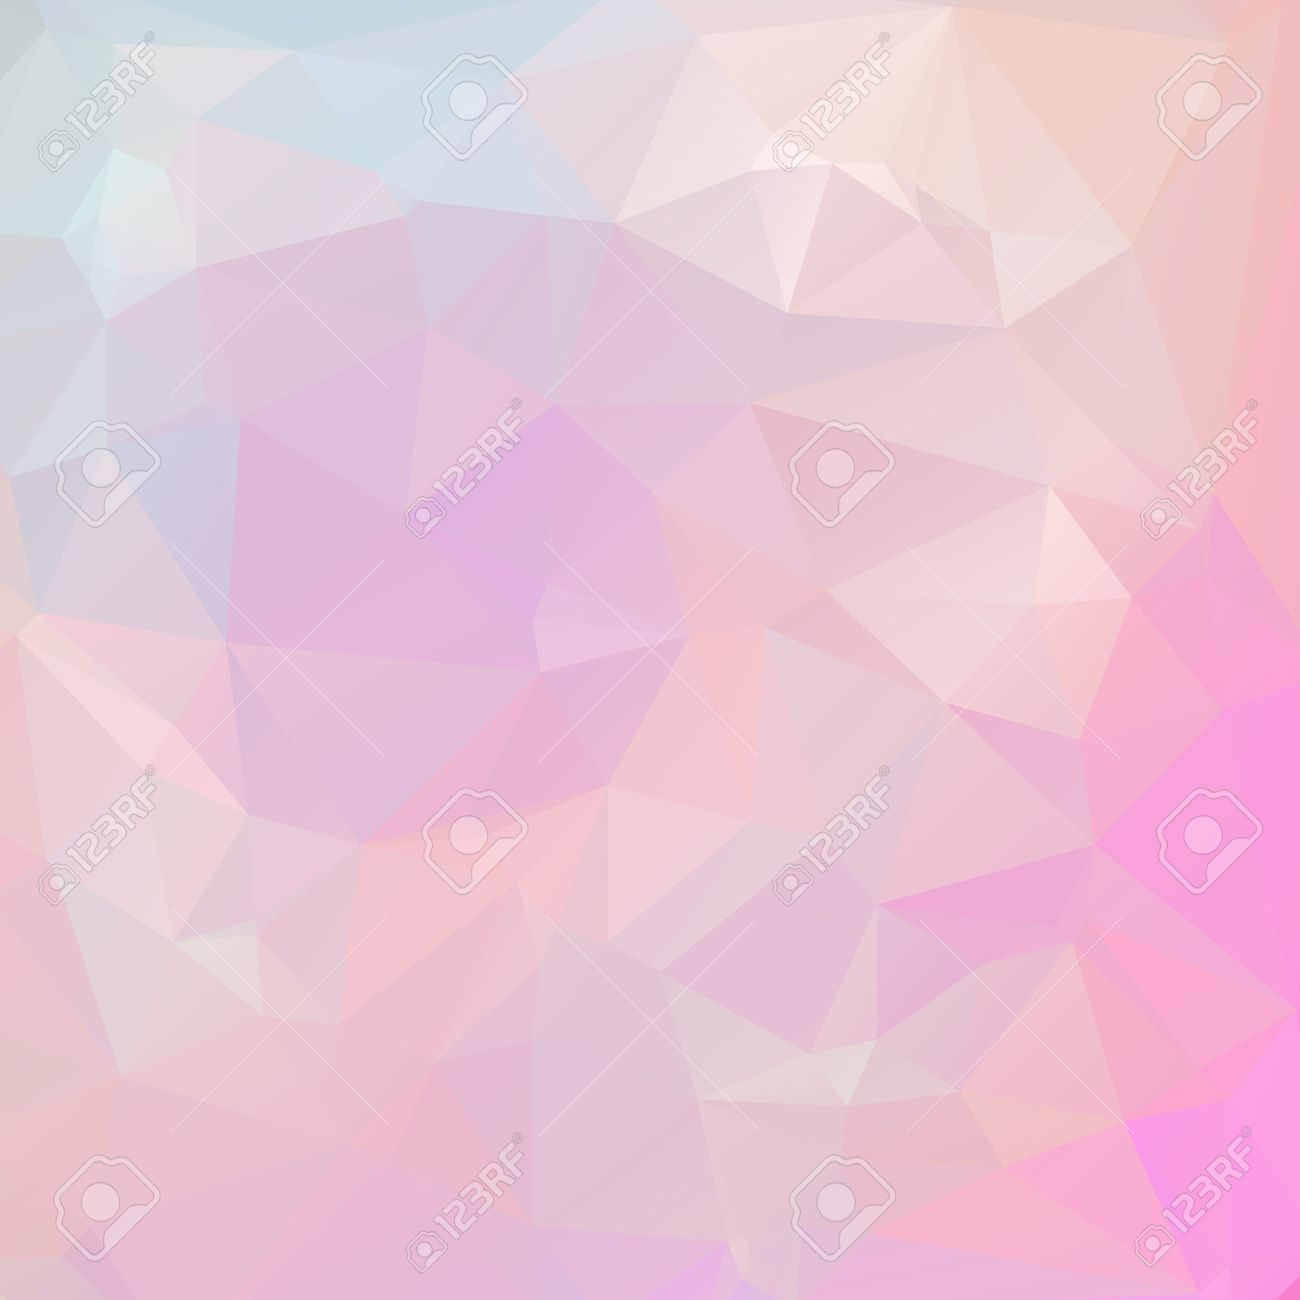 Abstract pastel color triangle shape background vector illustration - 40644484